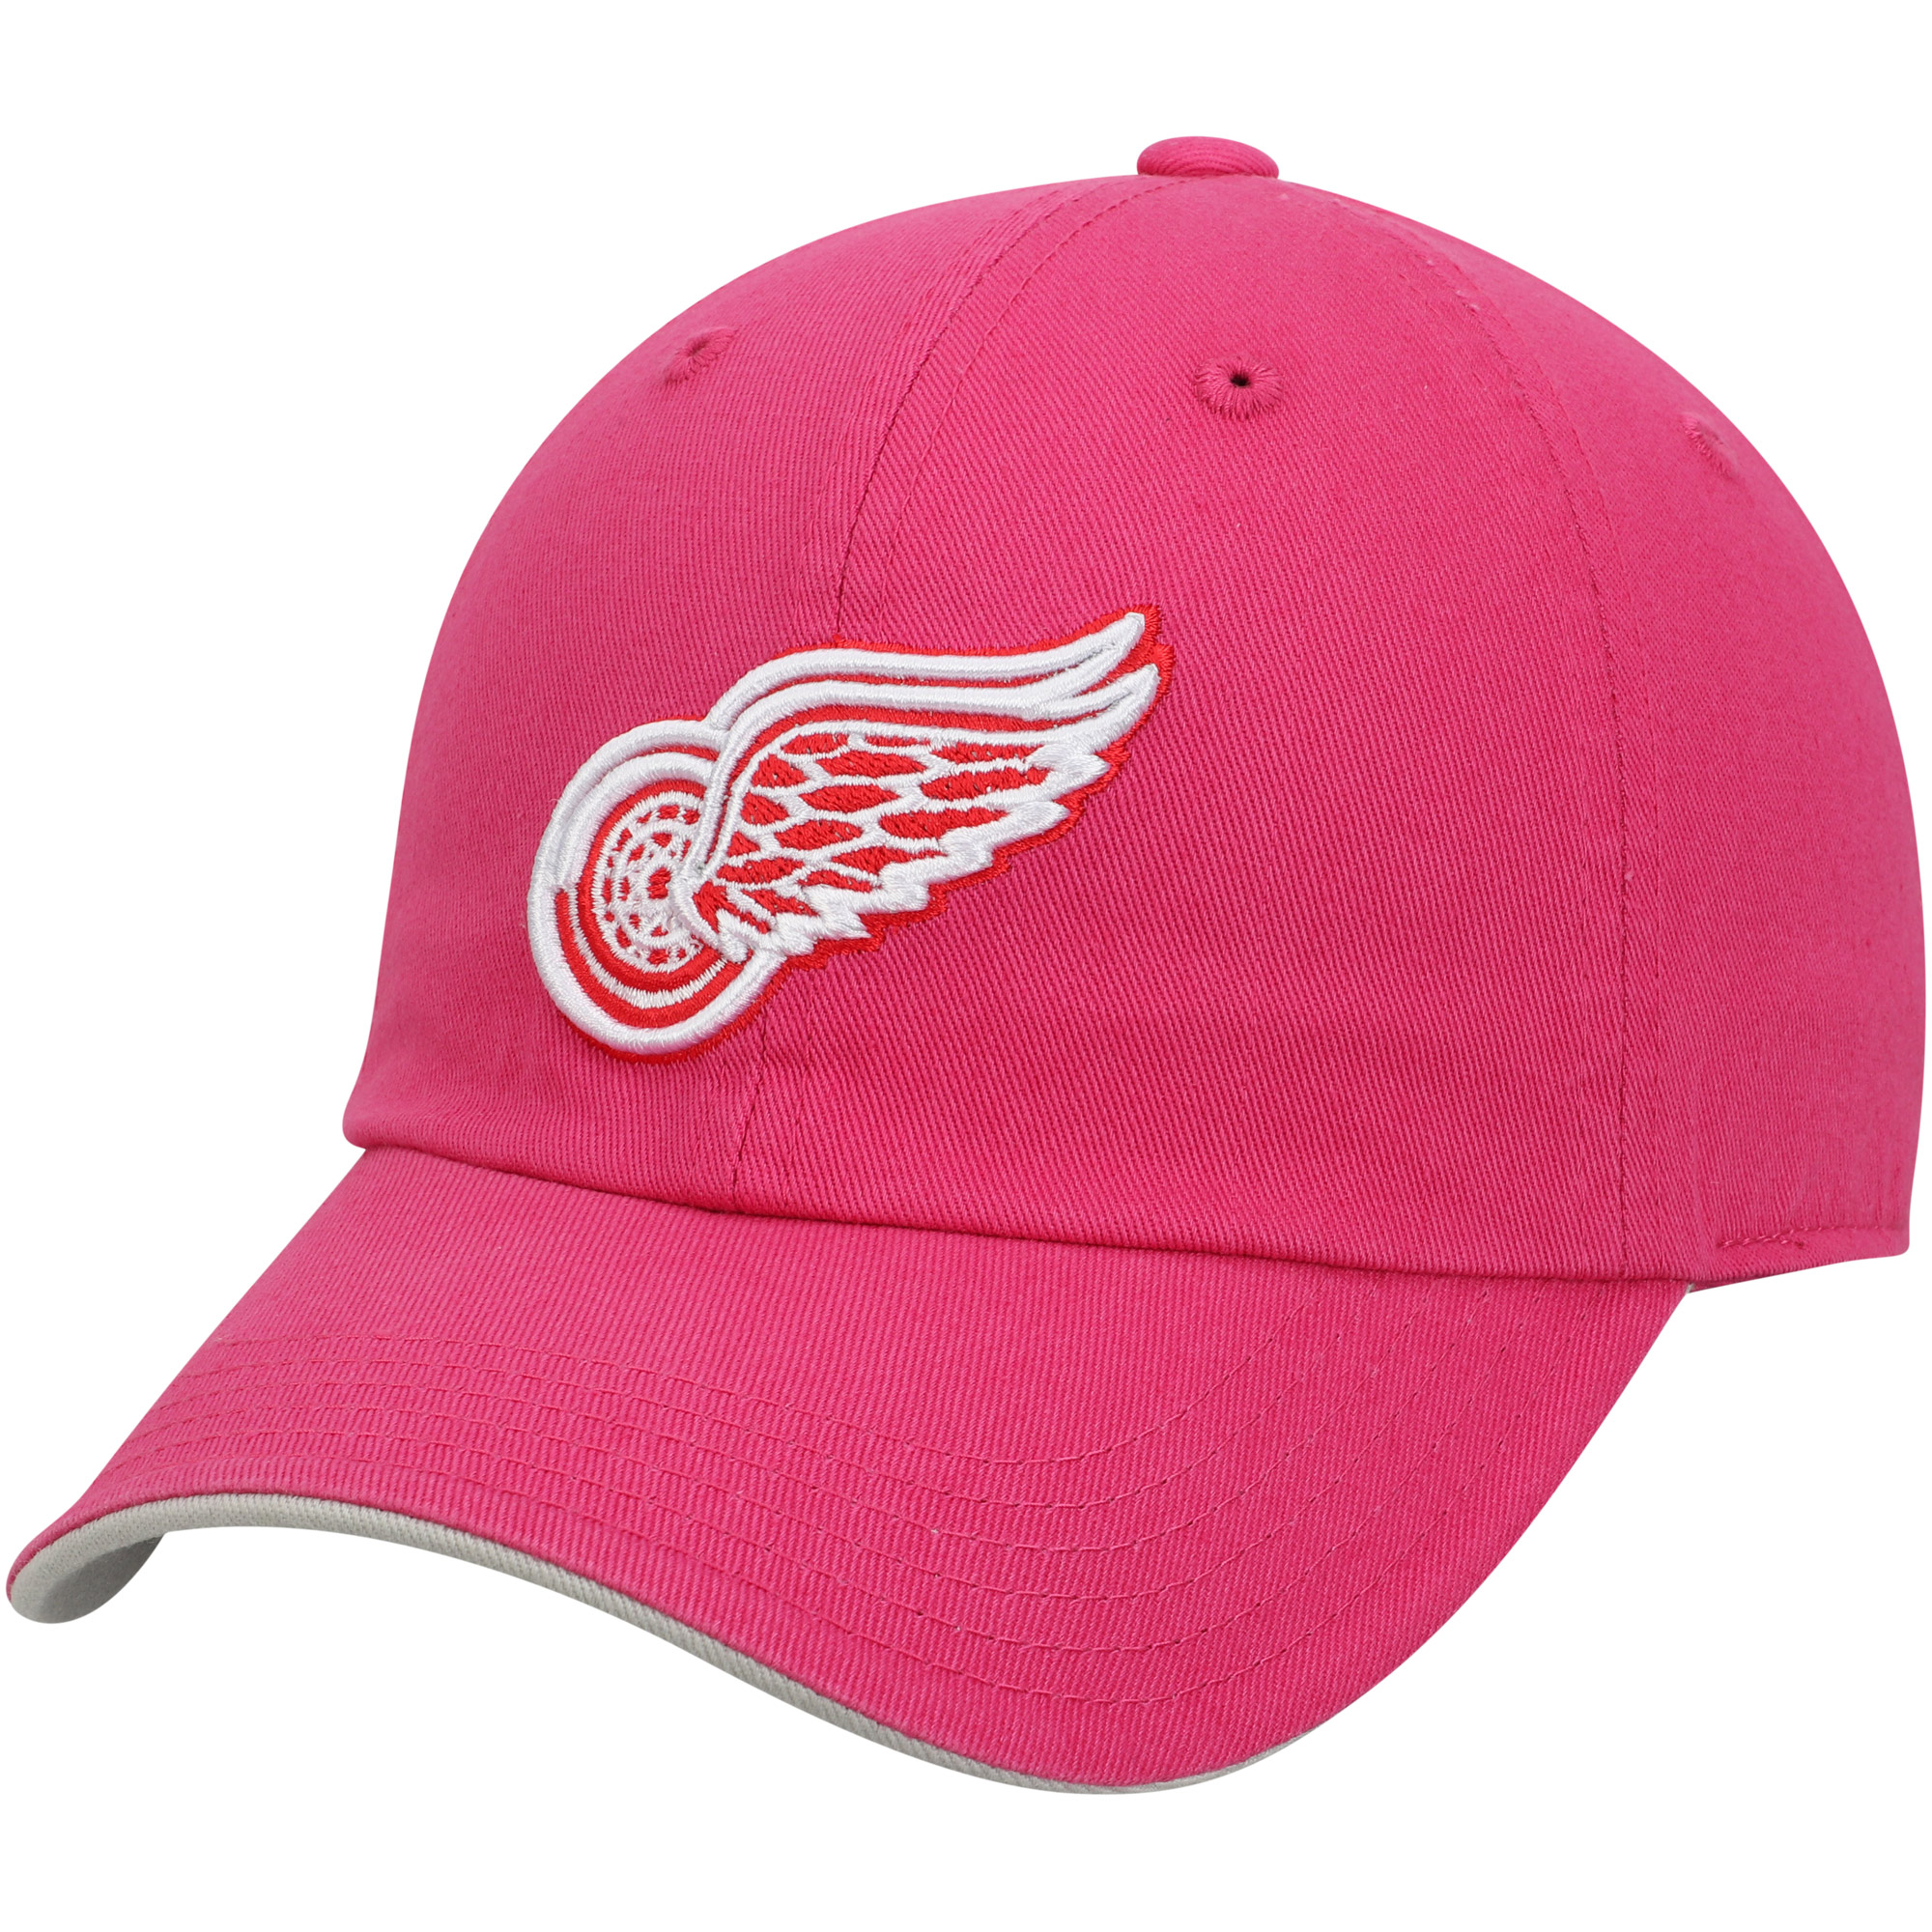 Detroit Red Wings Girls Youth Slouch Adjustable Hat - Pink - OSFA